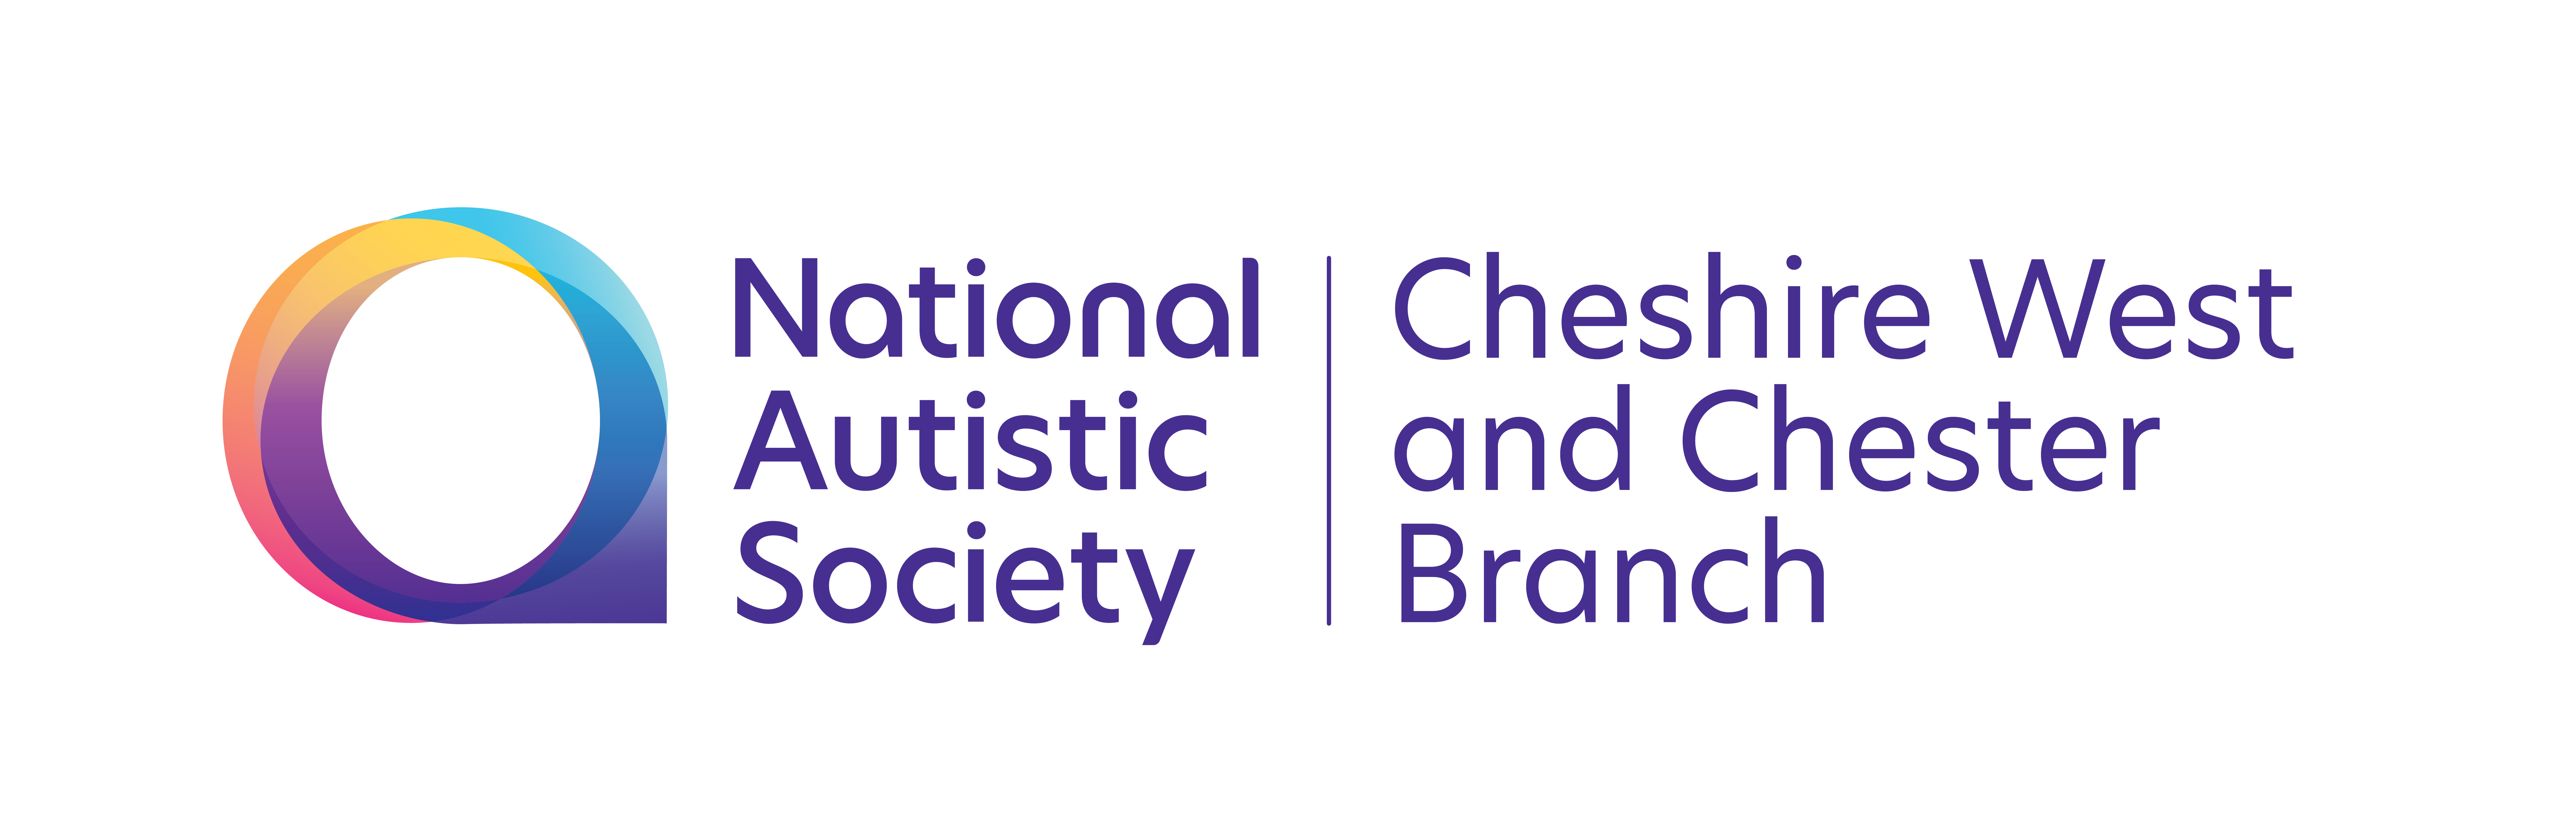 National Autistic Society Cheshire West and Chester